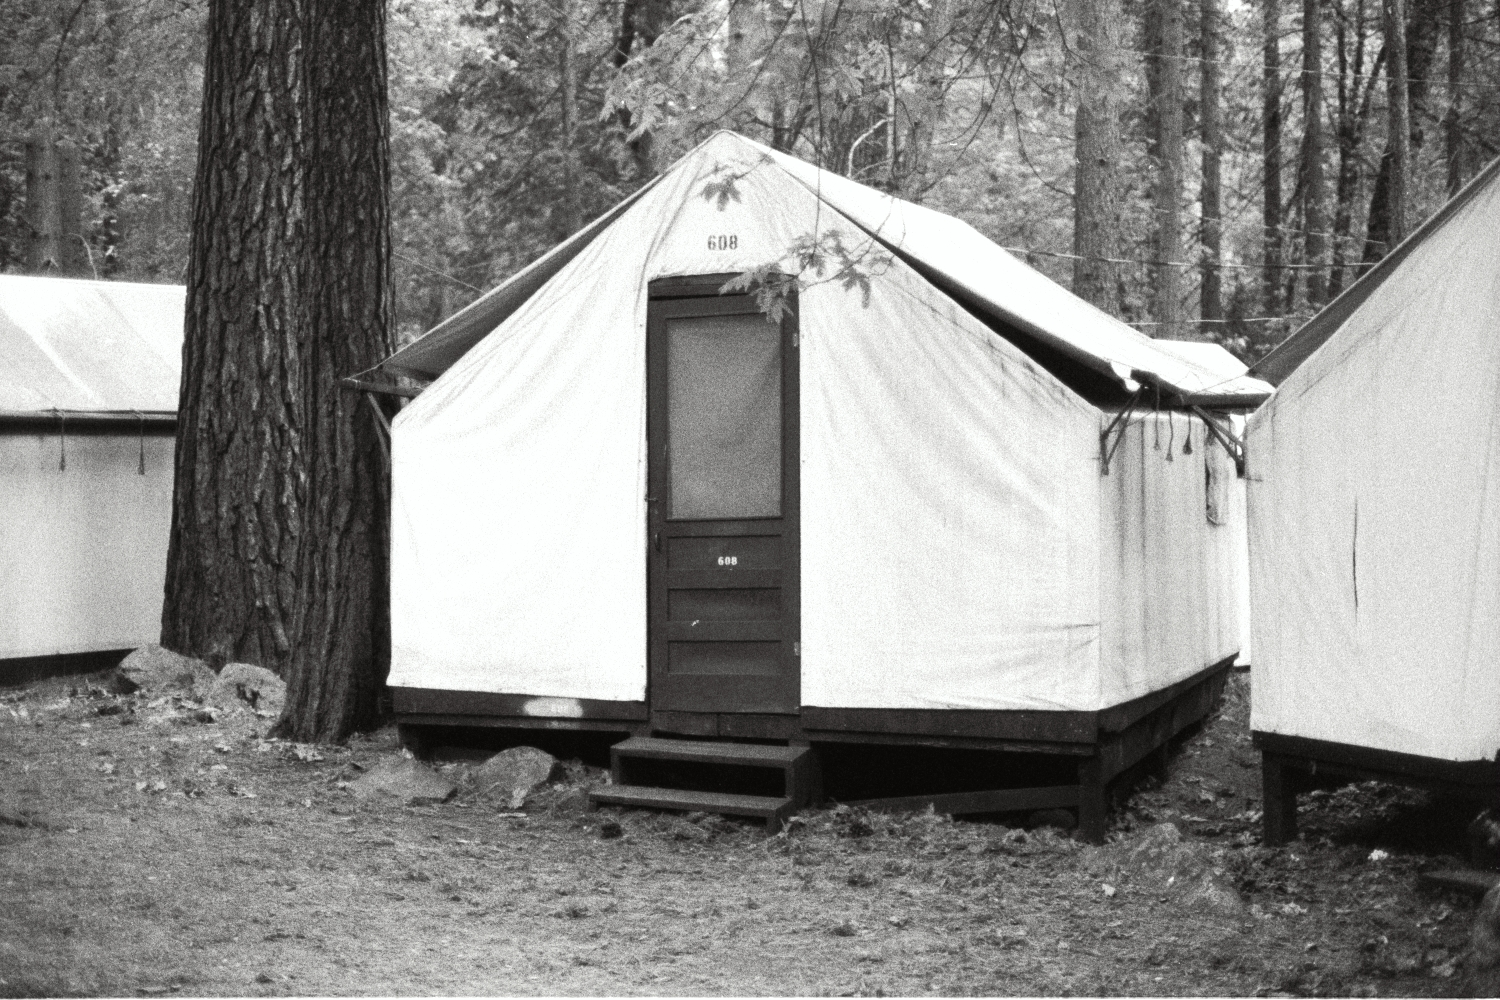 Camp Curry in Yosemite, in the late 1970s. California USA